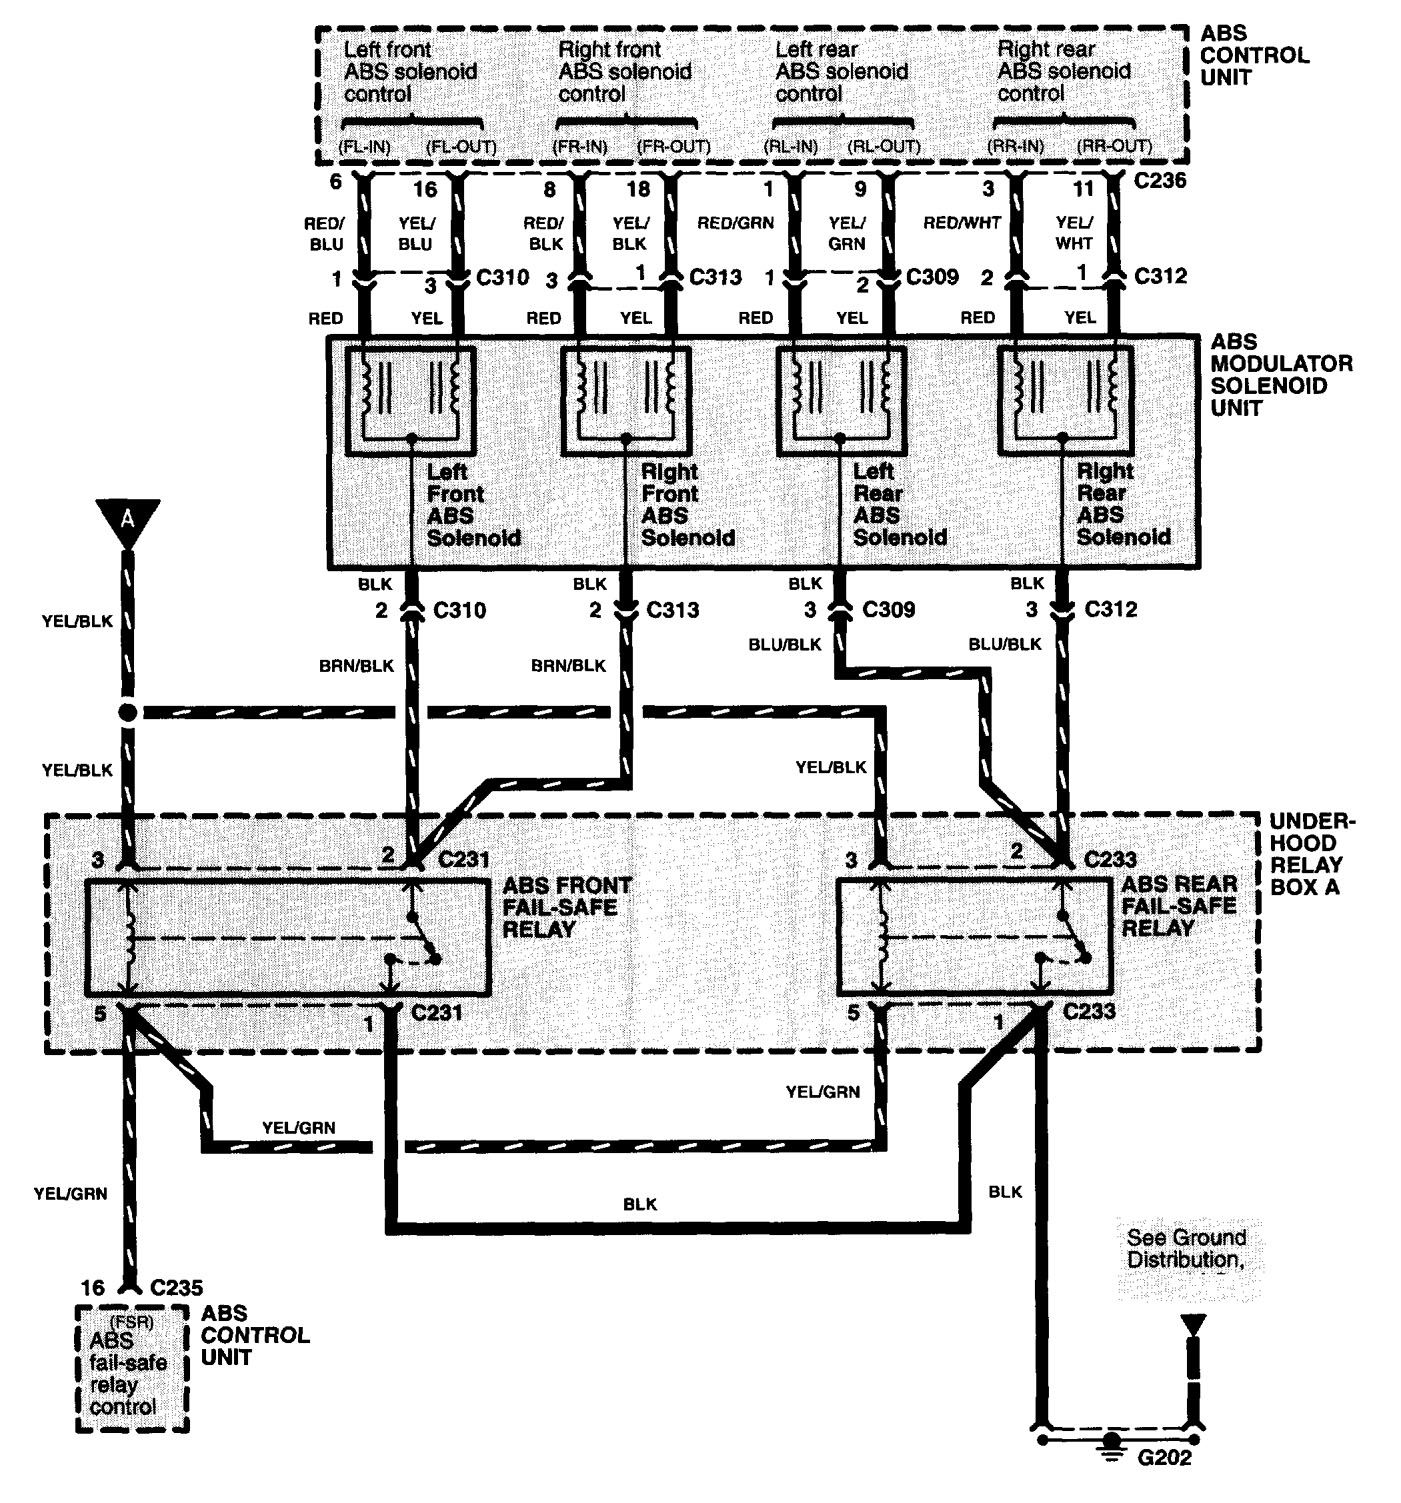 Model Wiring Ruud Schematic Rrgg05n24jkr Not Lossing Diagram Furnace Control Yamaha Sr500 Engine Diagrams Fzr600 Thermostat Air Conditioning